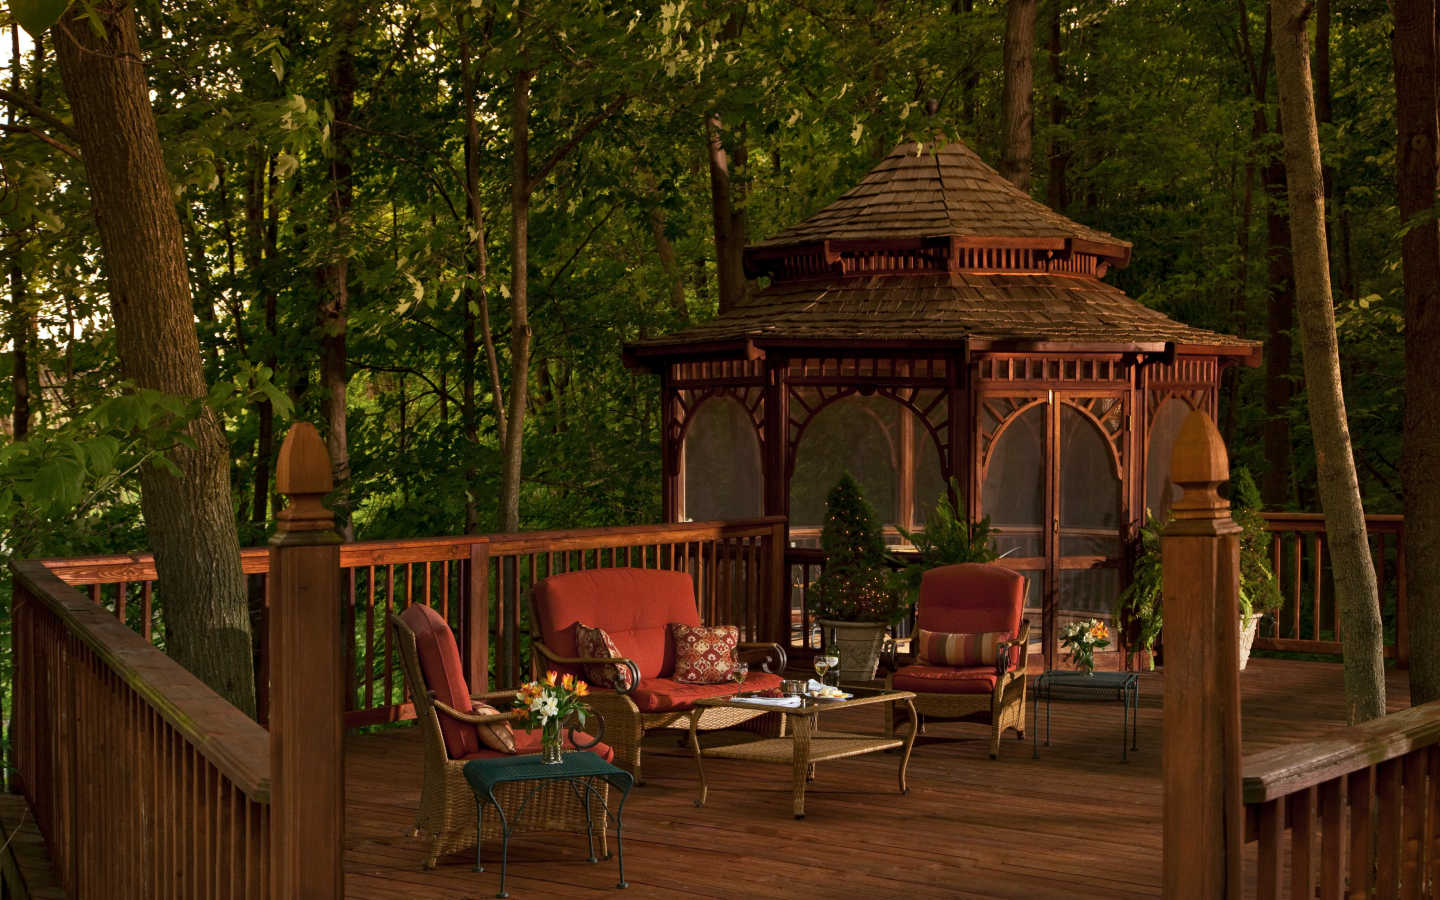 outdoor Gazebo at Michigan wedding venue